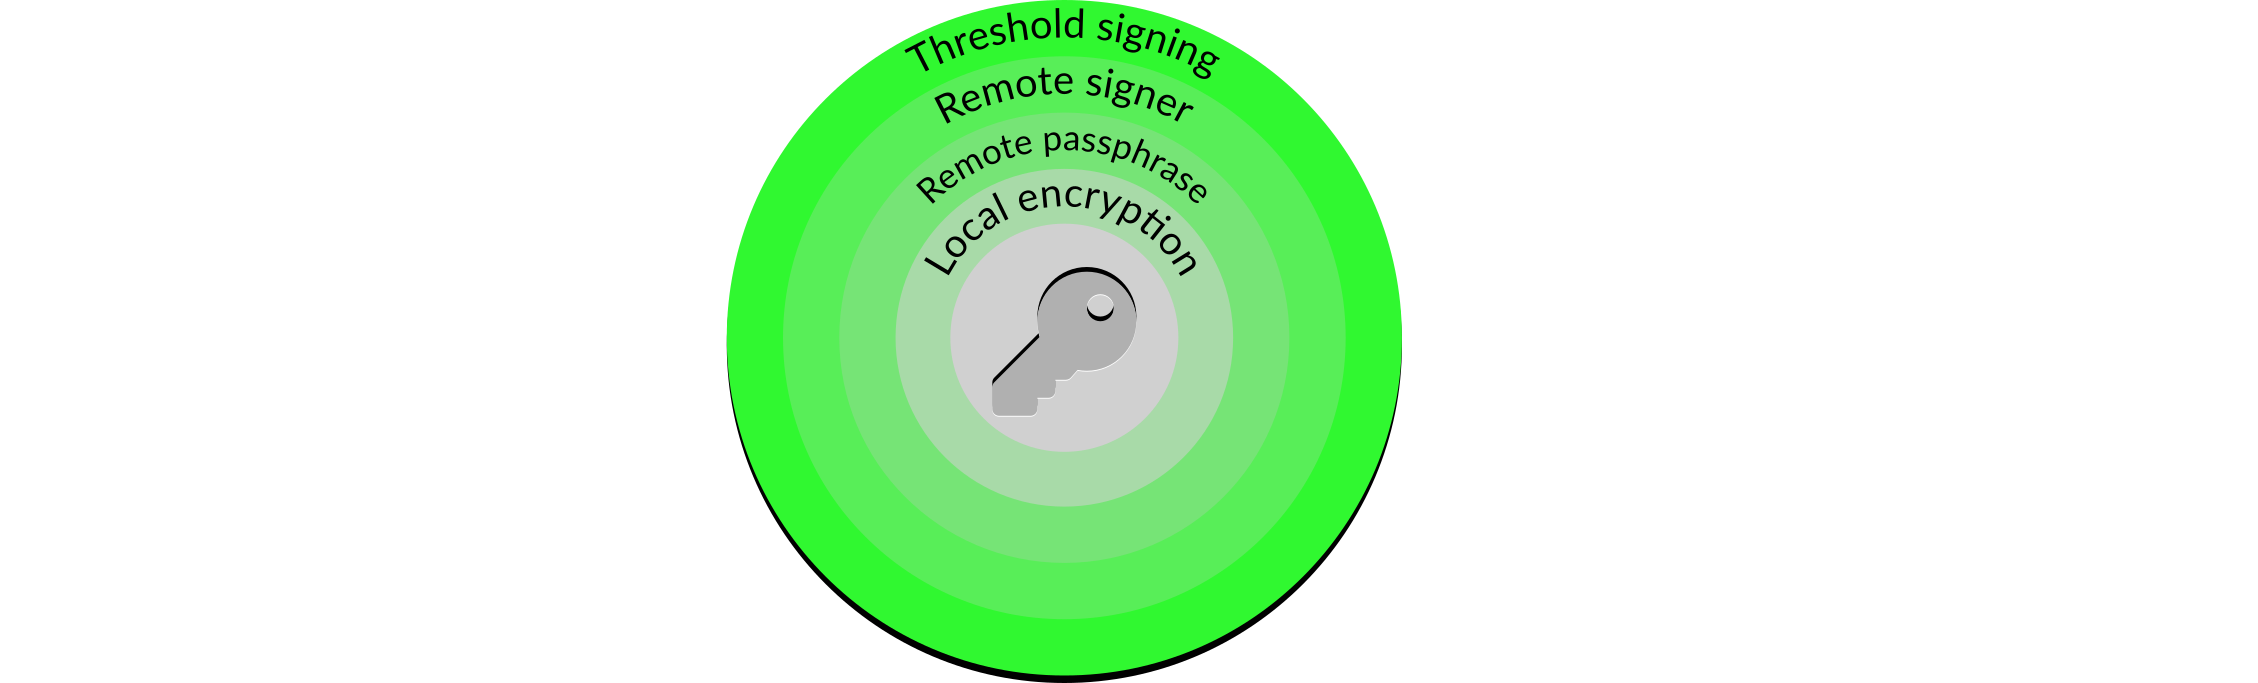 Threshold signing